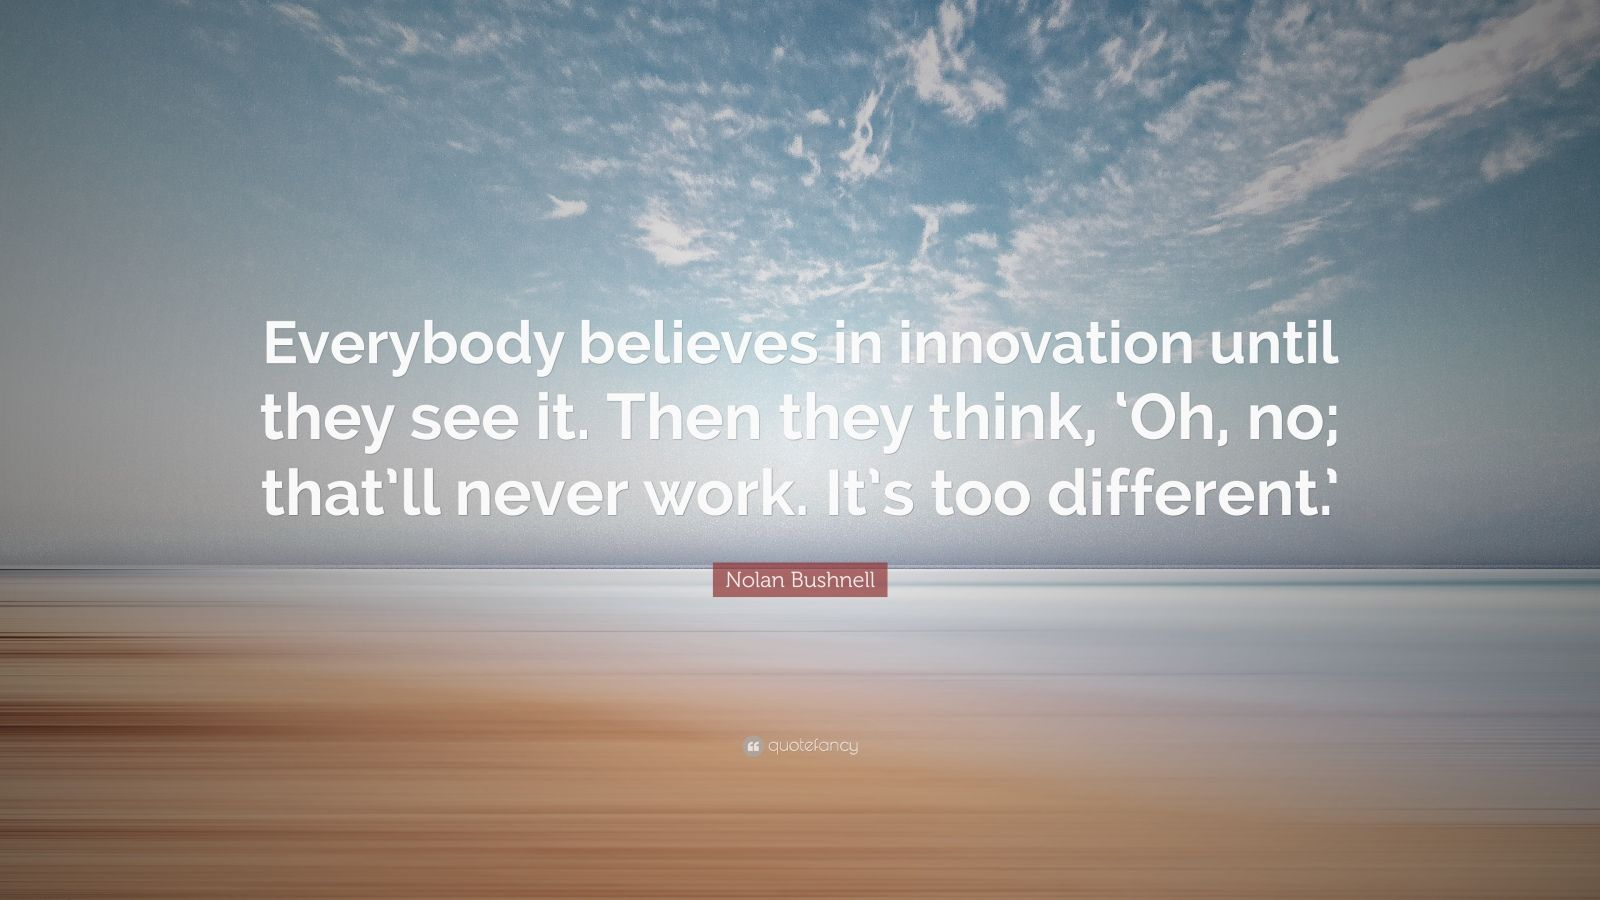 """Nolan Bushnell Quote: """"Everybody believes in innovation until they see it. Then they think, 'Oh, no; that'll never work. It's too different.'"""""""